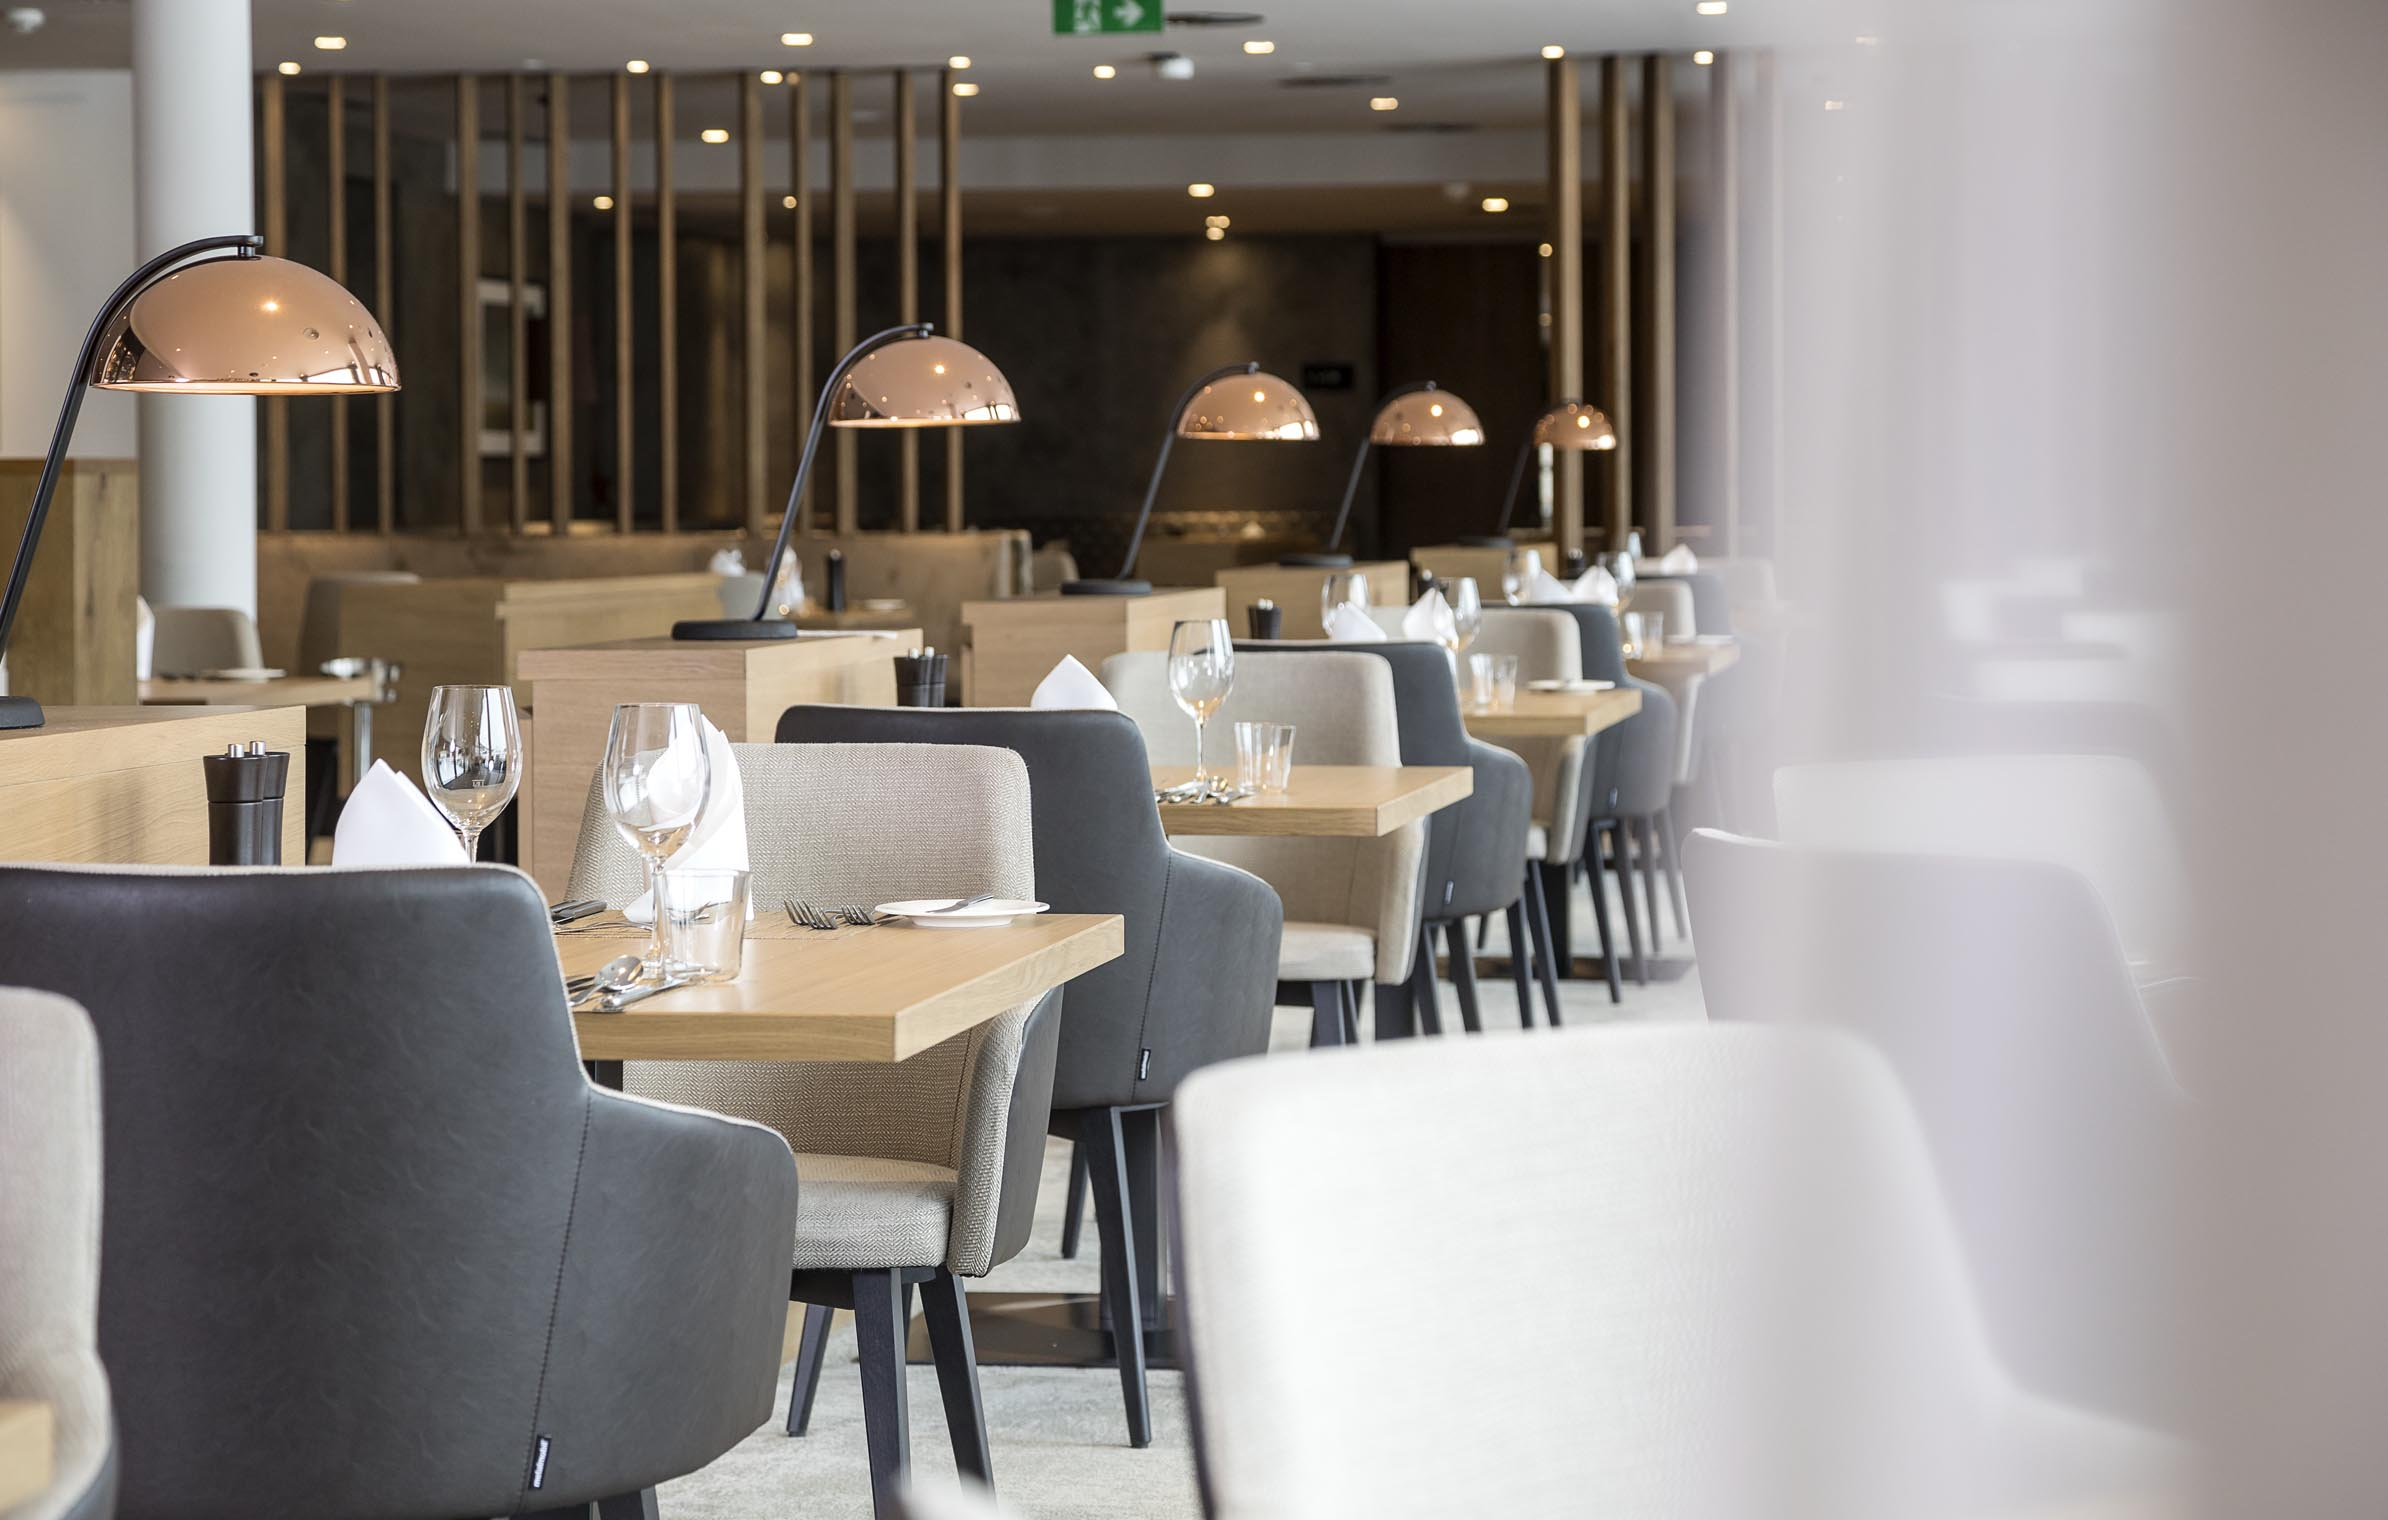 Sporthotel_HoheSalve_restaurant_chairs_tables